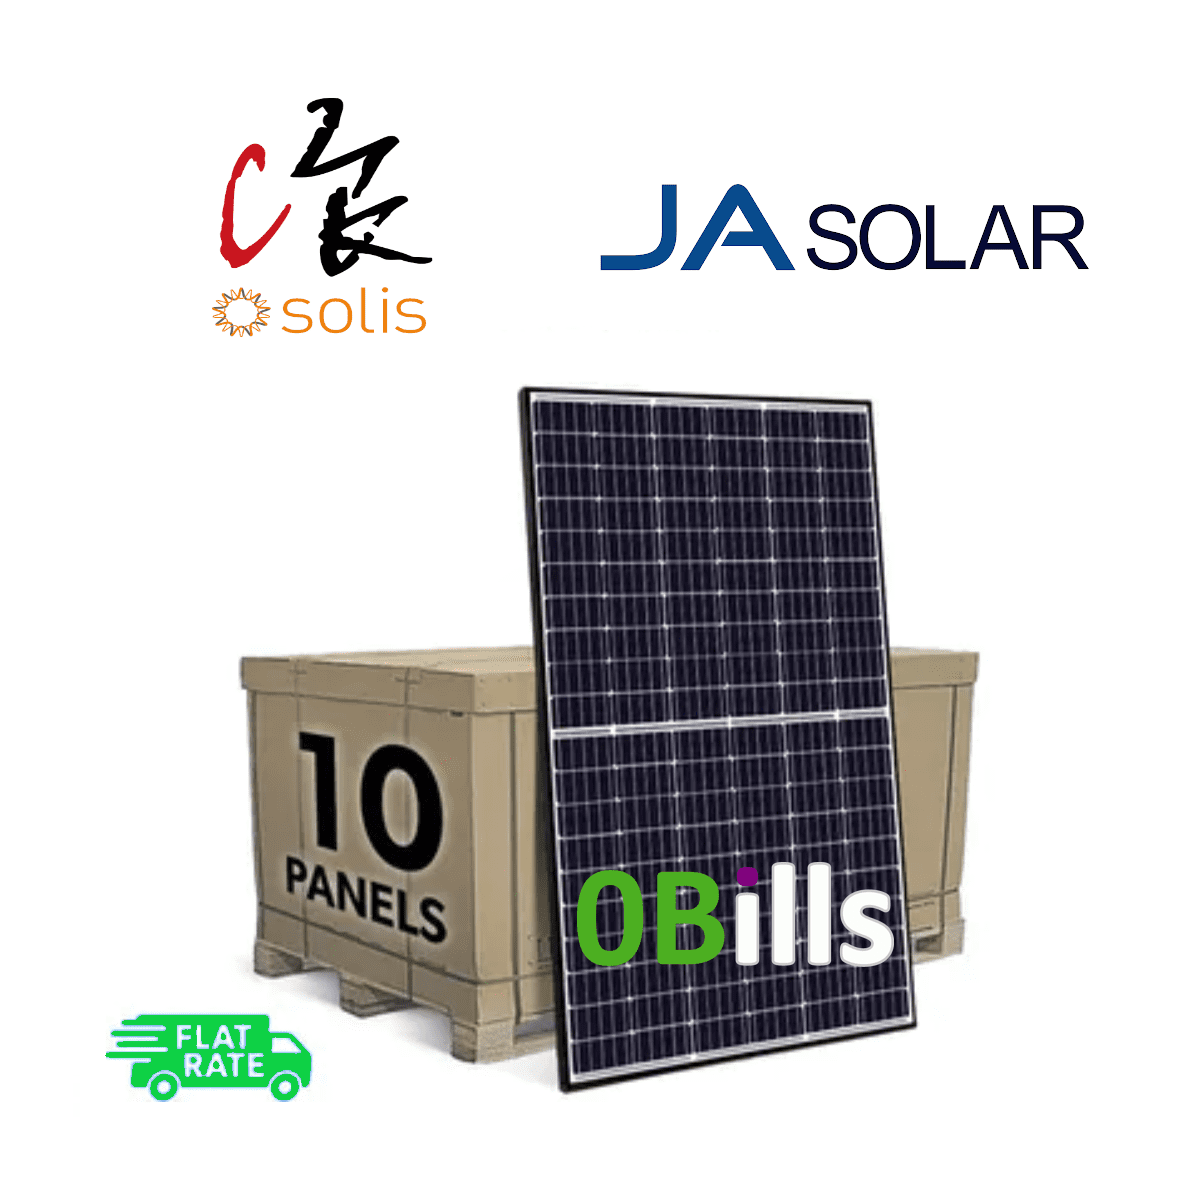 Amazon Solis 3kW Grid Tie DIY Solar Panel System Kit for Sale At Best Price